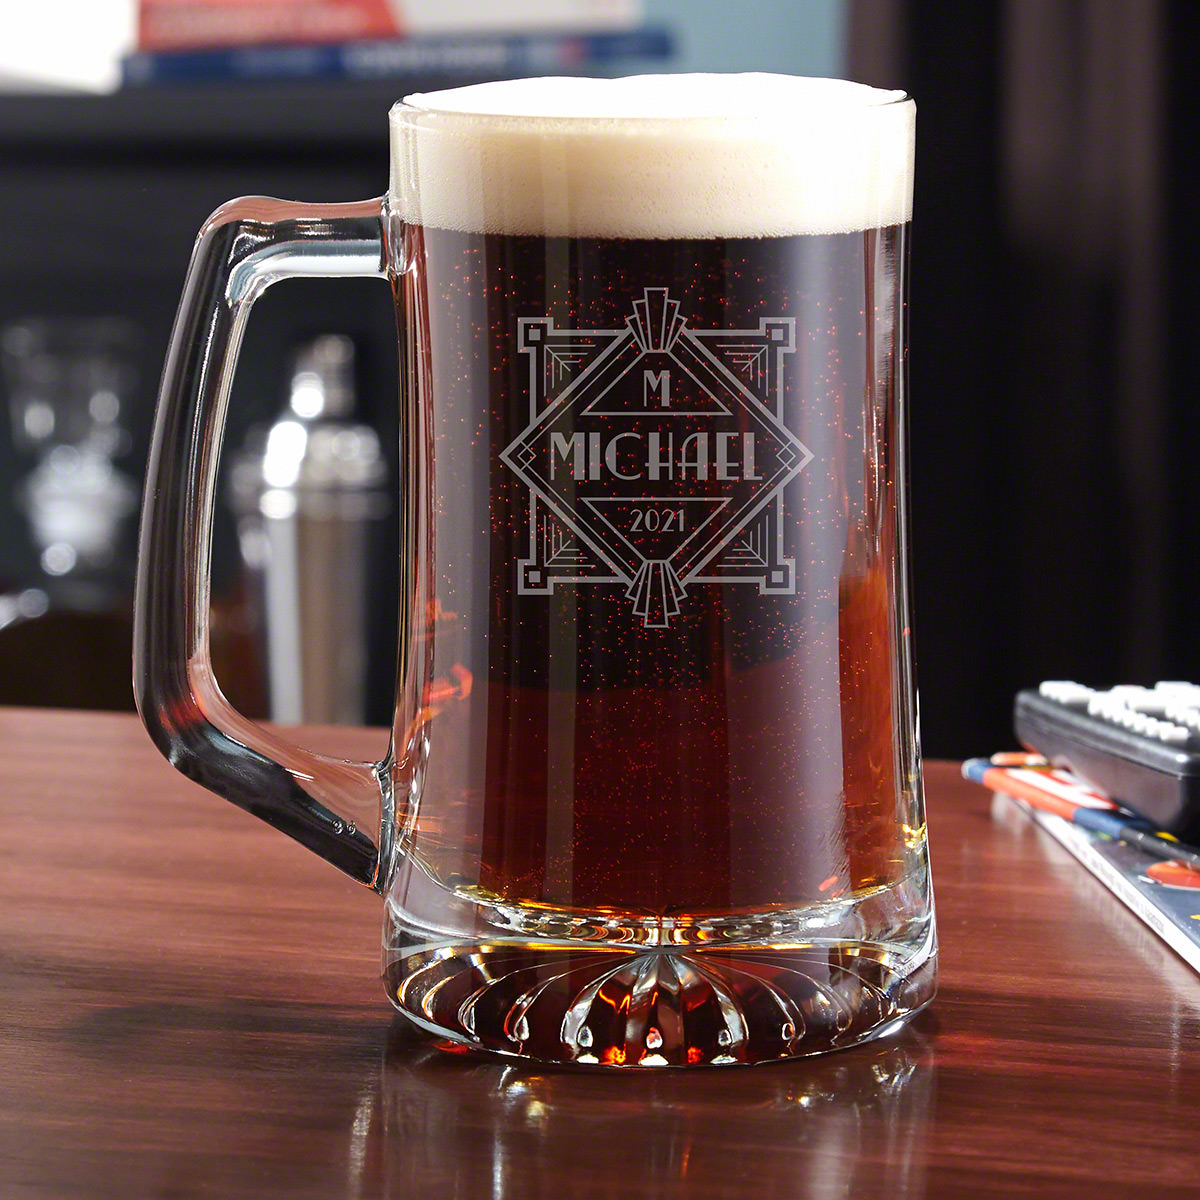 Strong and sturdy: two characteristics that you want from your glassware. This engraved beer mug is a fantastic addition to your glassware collection because it's crafted from very thick glass, so your beer will stay nice and cold inside. The handle ens #mug